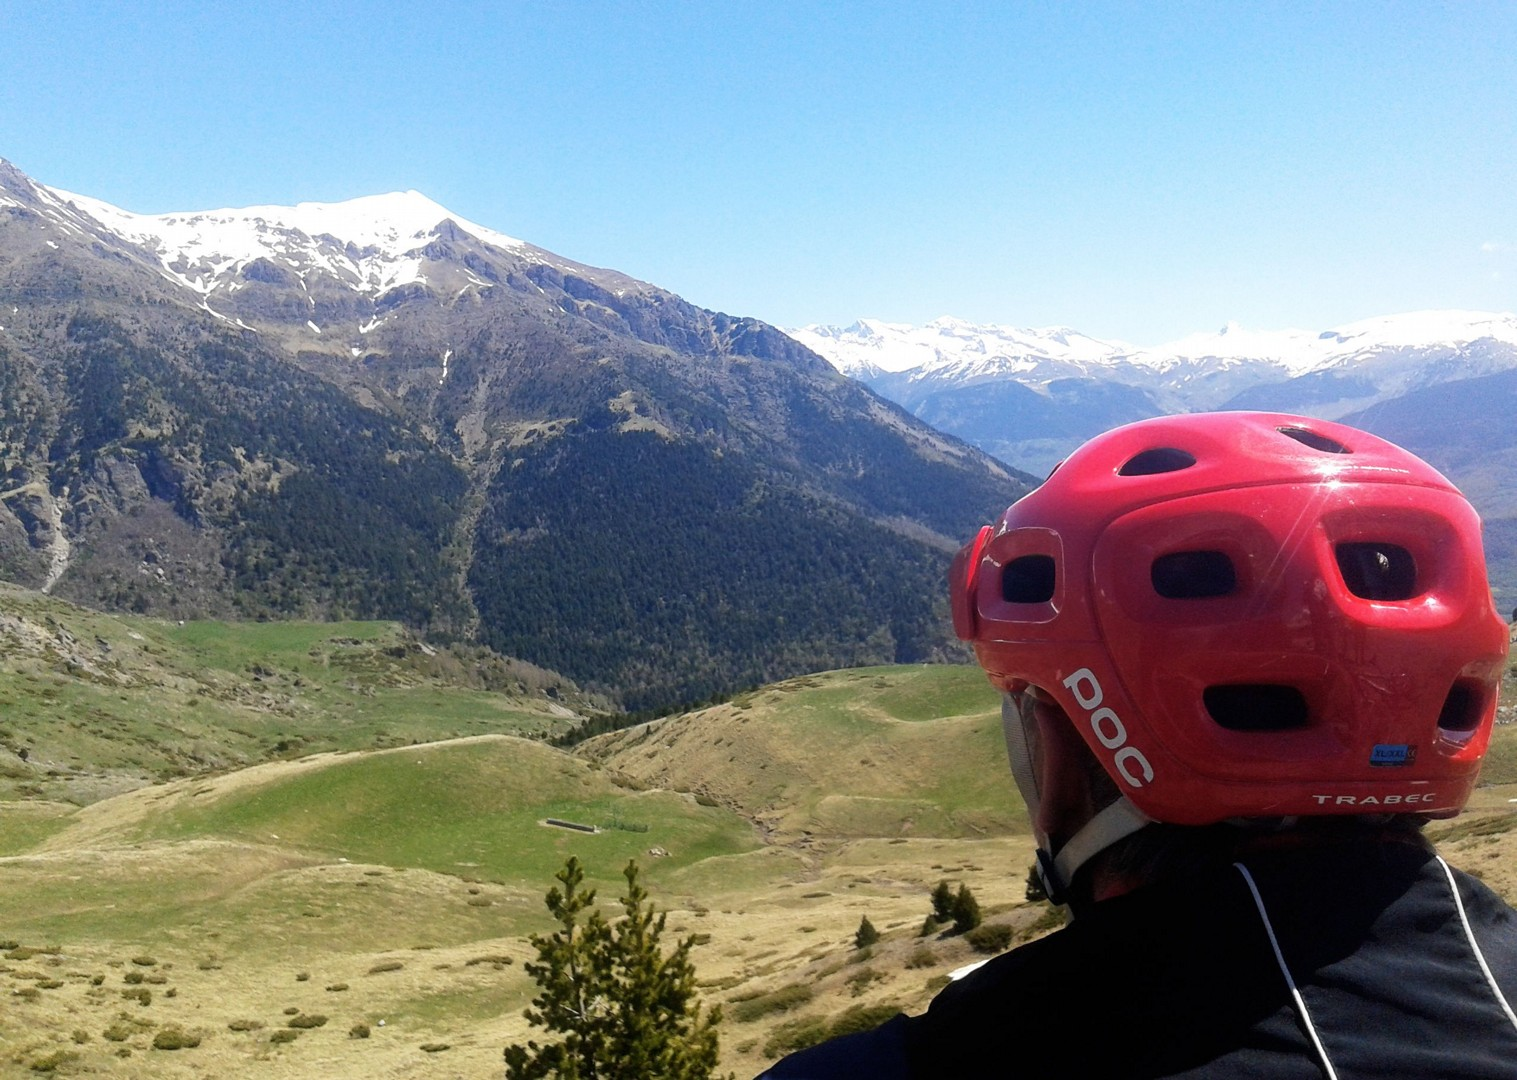 20160516_123345.jpg - Spain - Pyrenees Enduro - Guided Mountain Bike Holiday - Mountain Biking